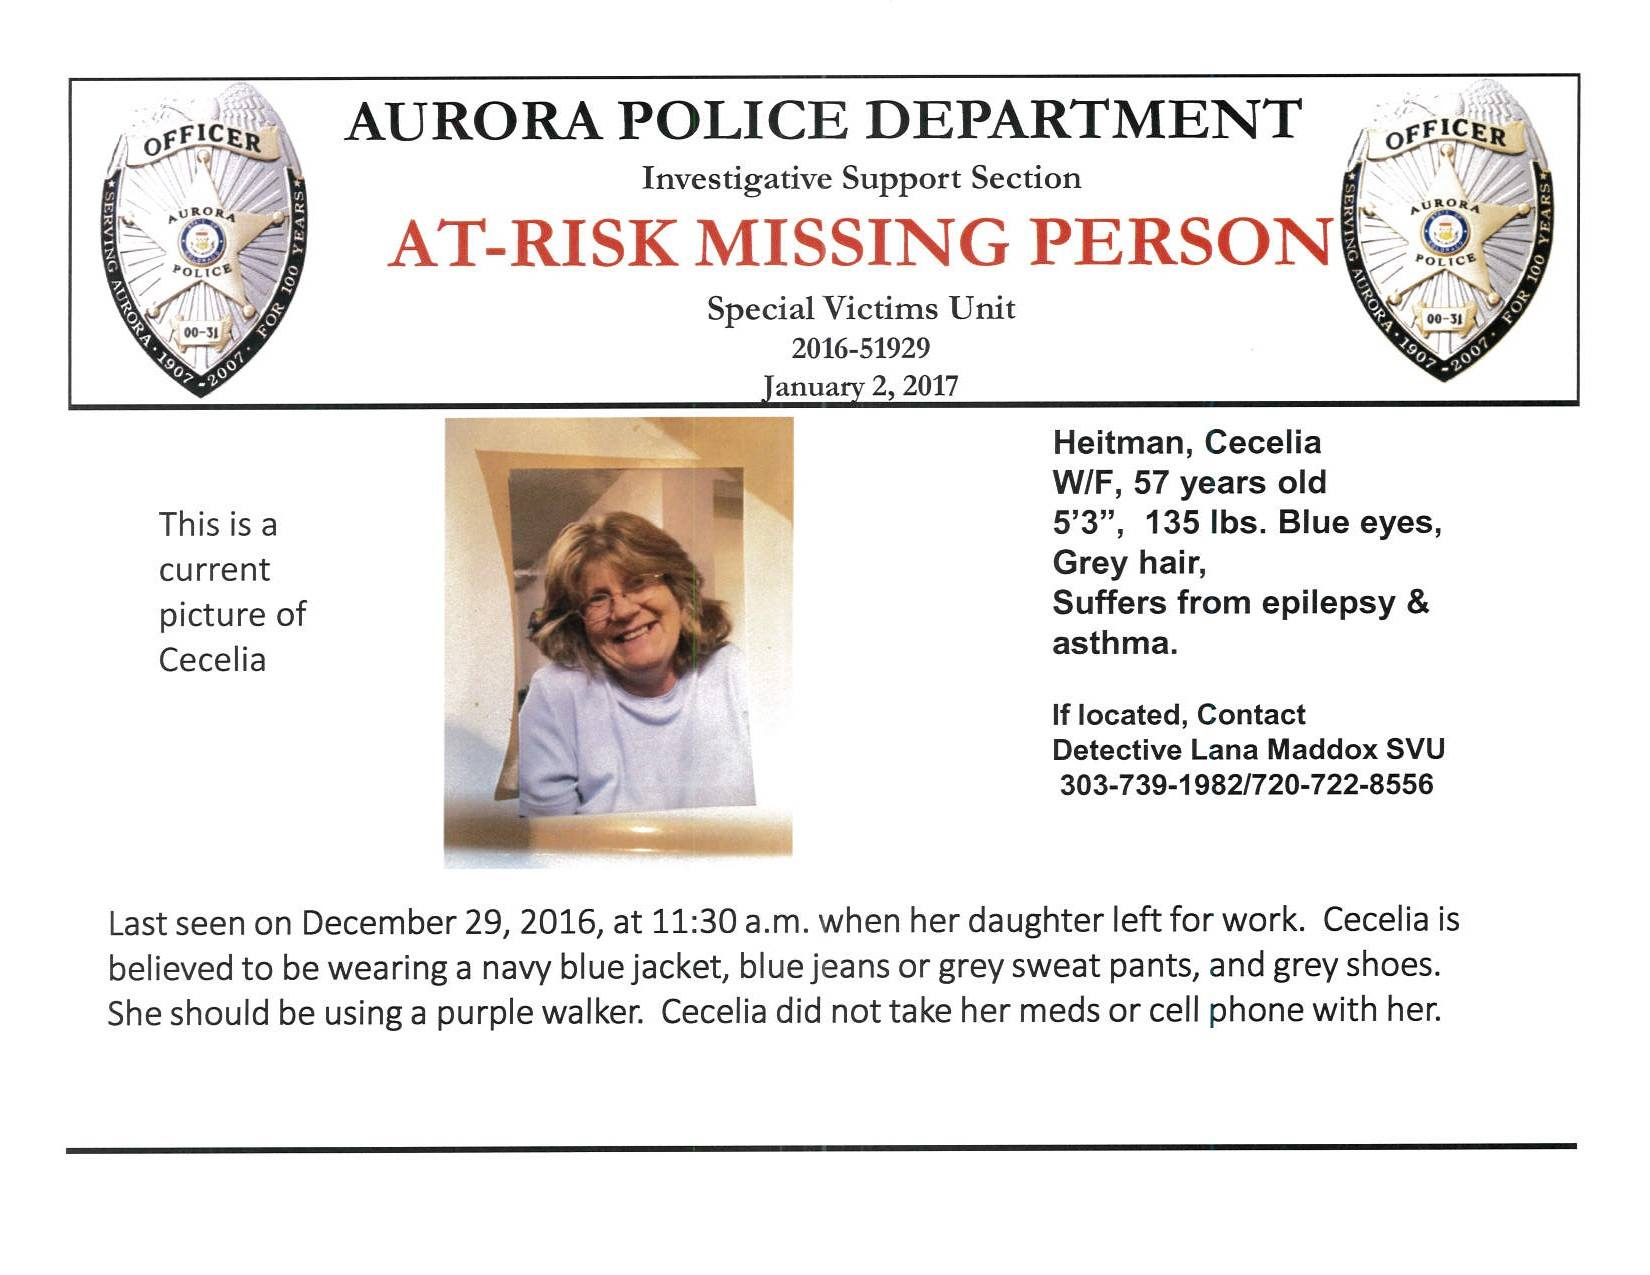 Missing poster courtesy of the St. George Police Department, St. George News